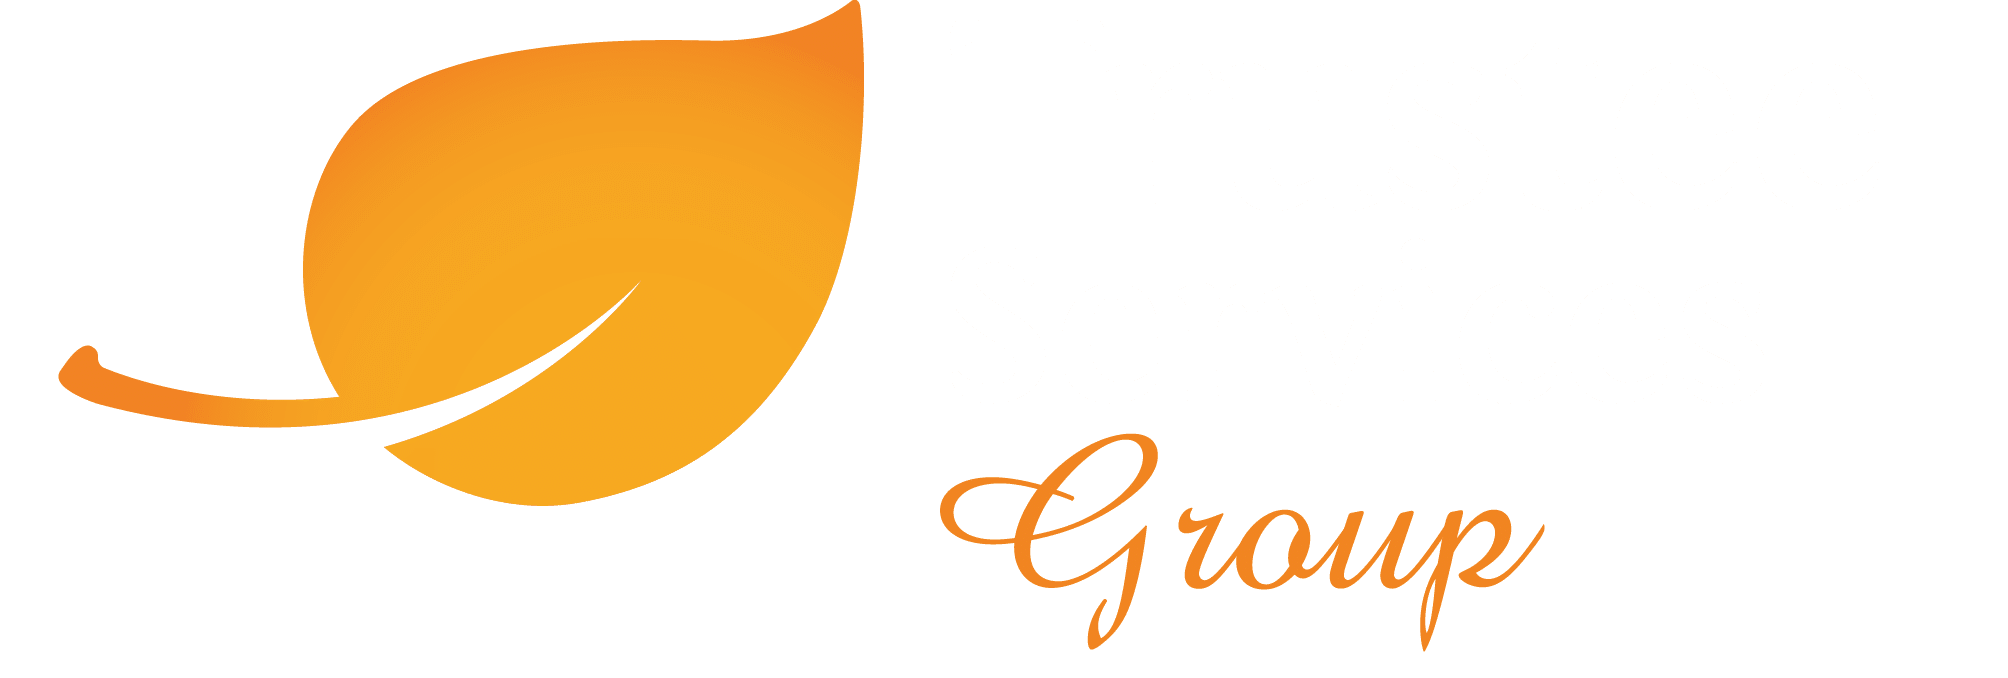 Trustee Services Group Logo